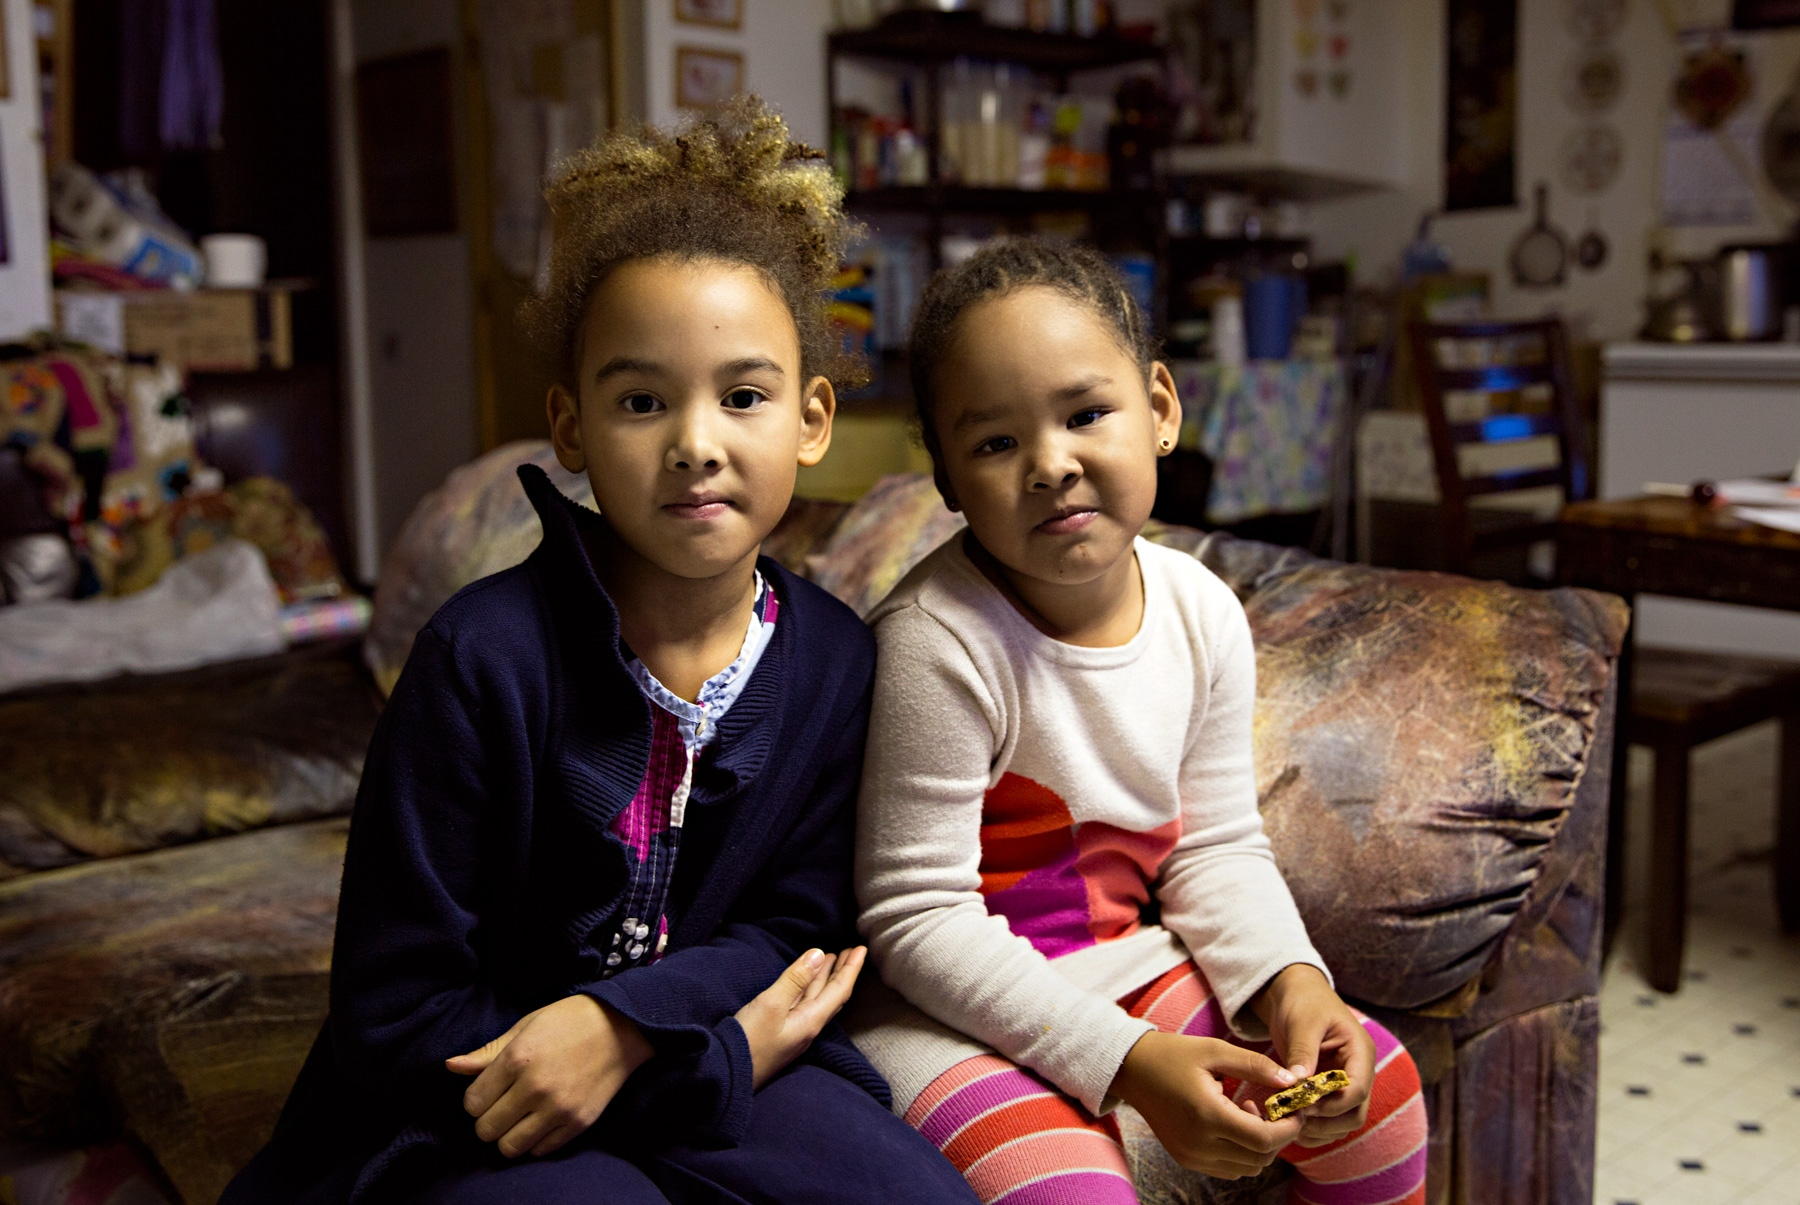 Kiyeivi (7) and Kalaya (3) stay with their grandmother during after school hours while their mother is at work.